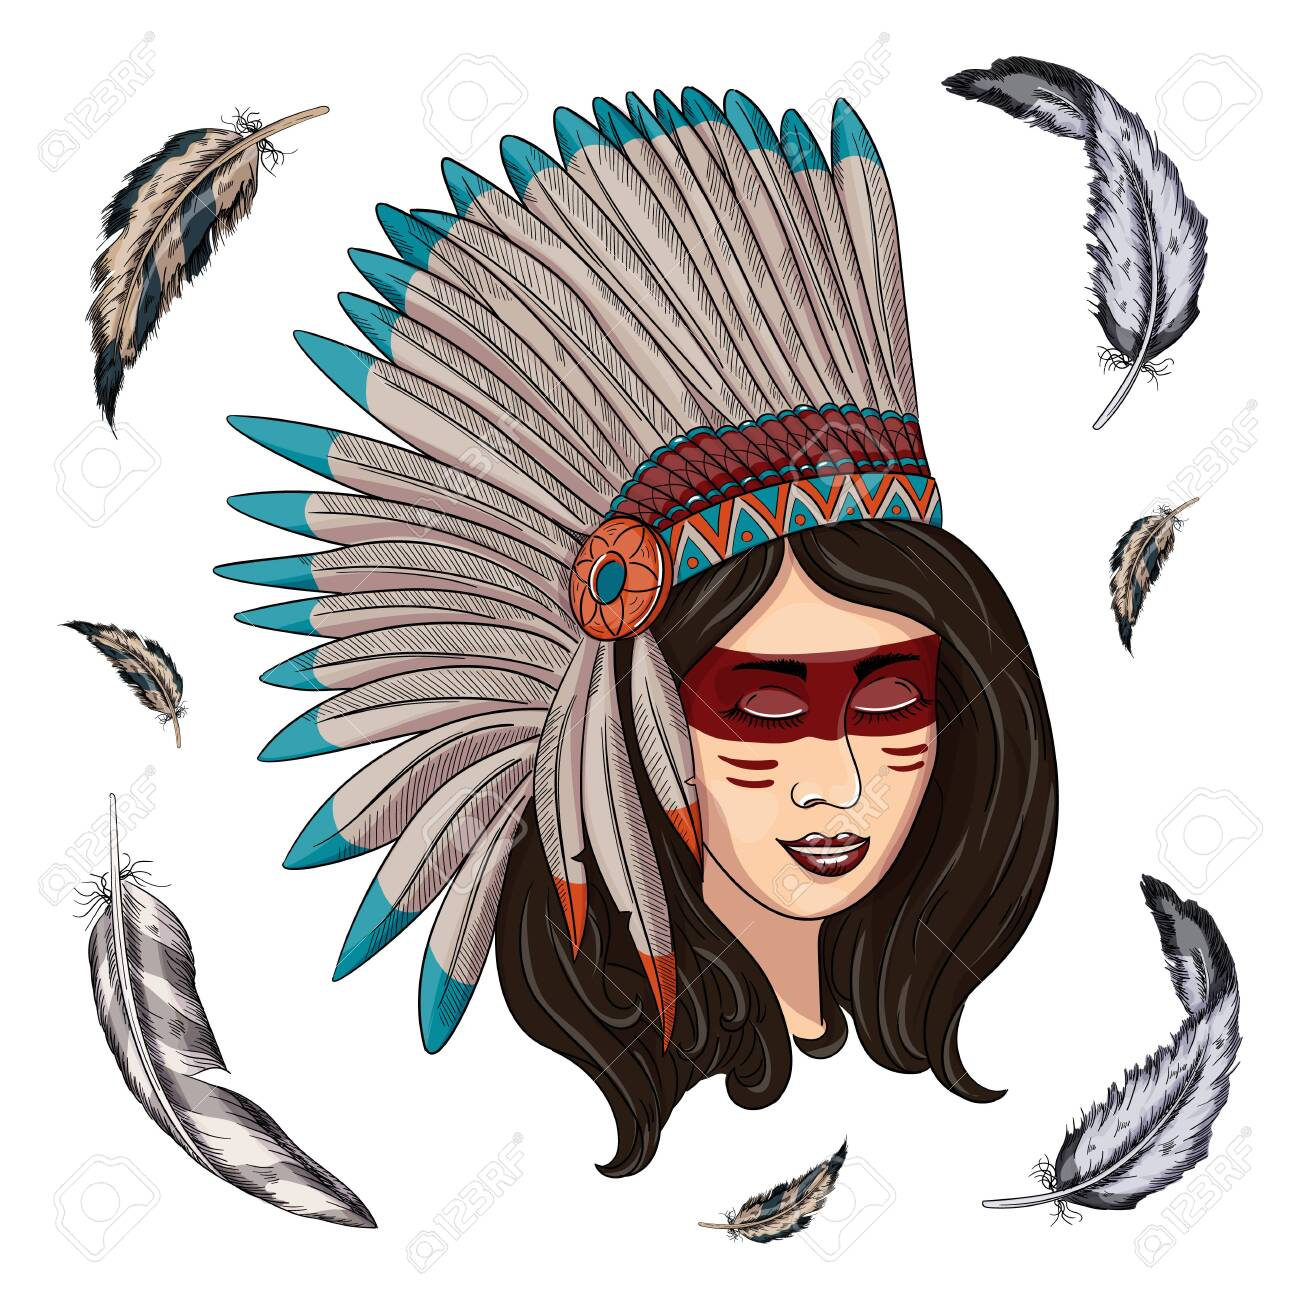 illustration of a beautiful American Indian woman with braided hair - 144518924